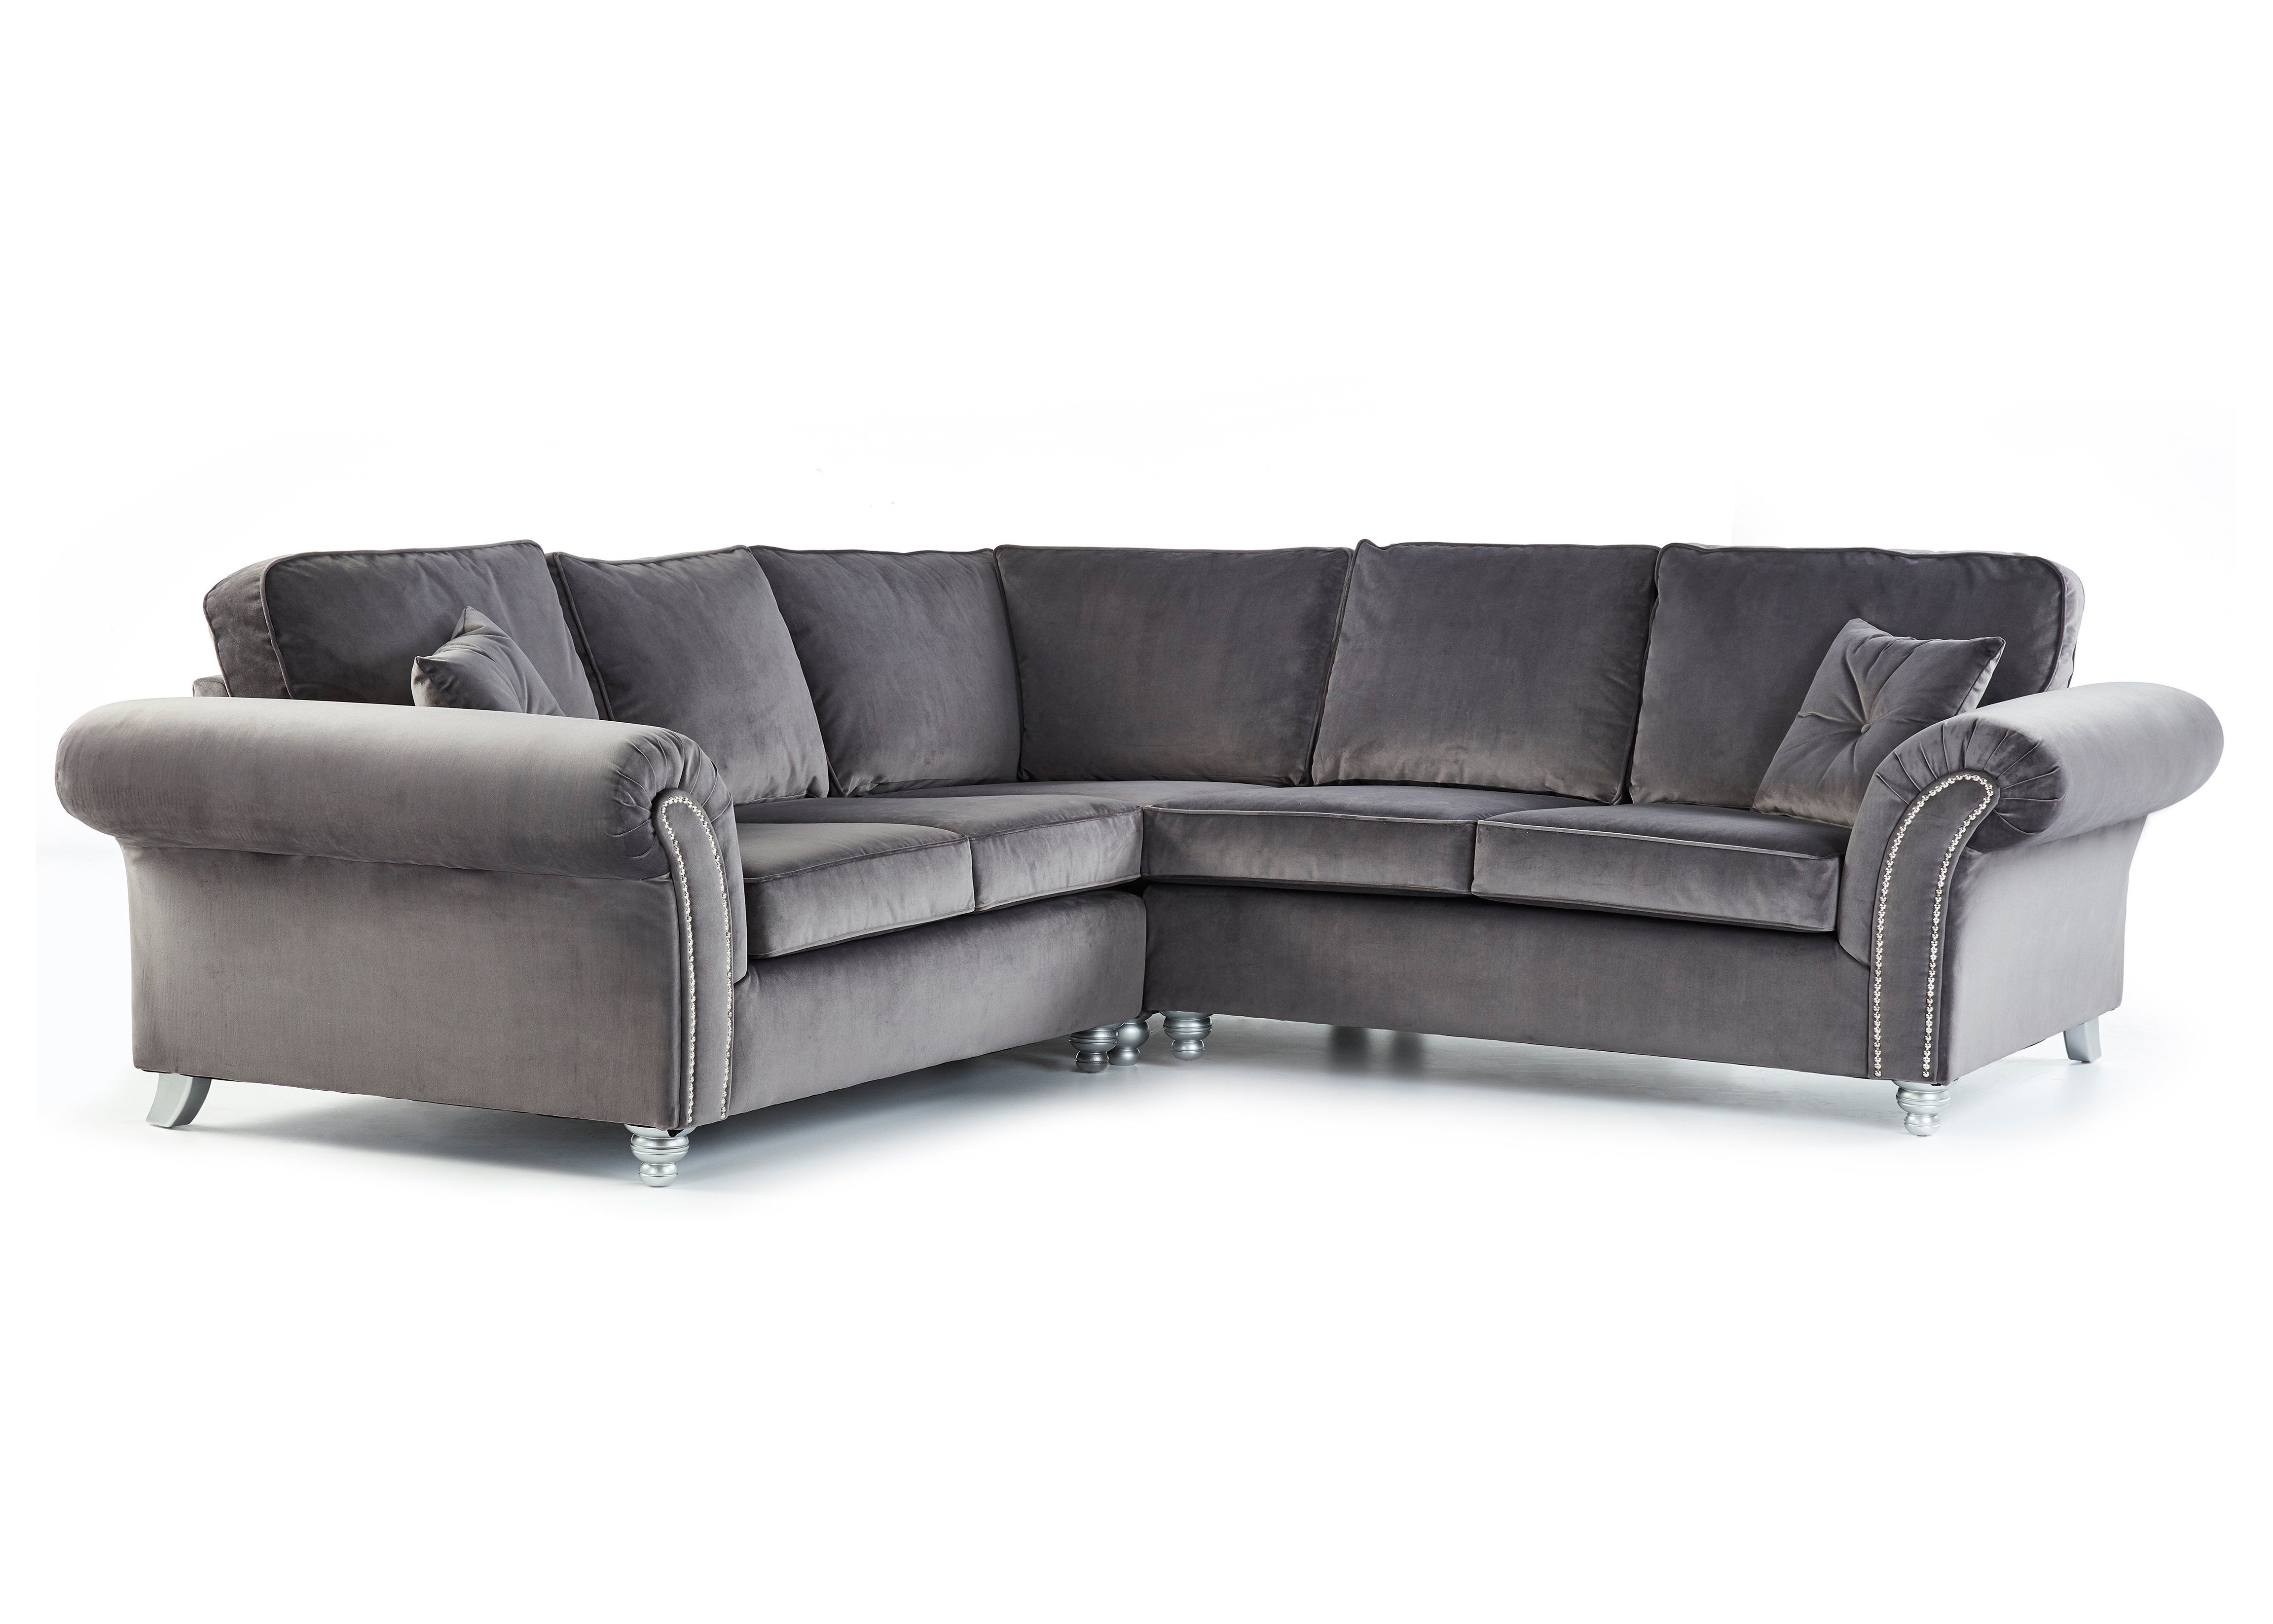 Woodford Corner Sofa Club Fast Delivery Fabric Double